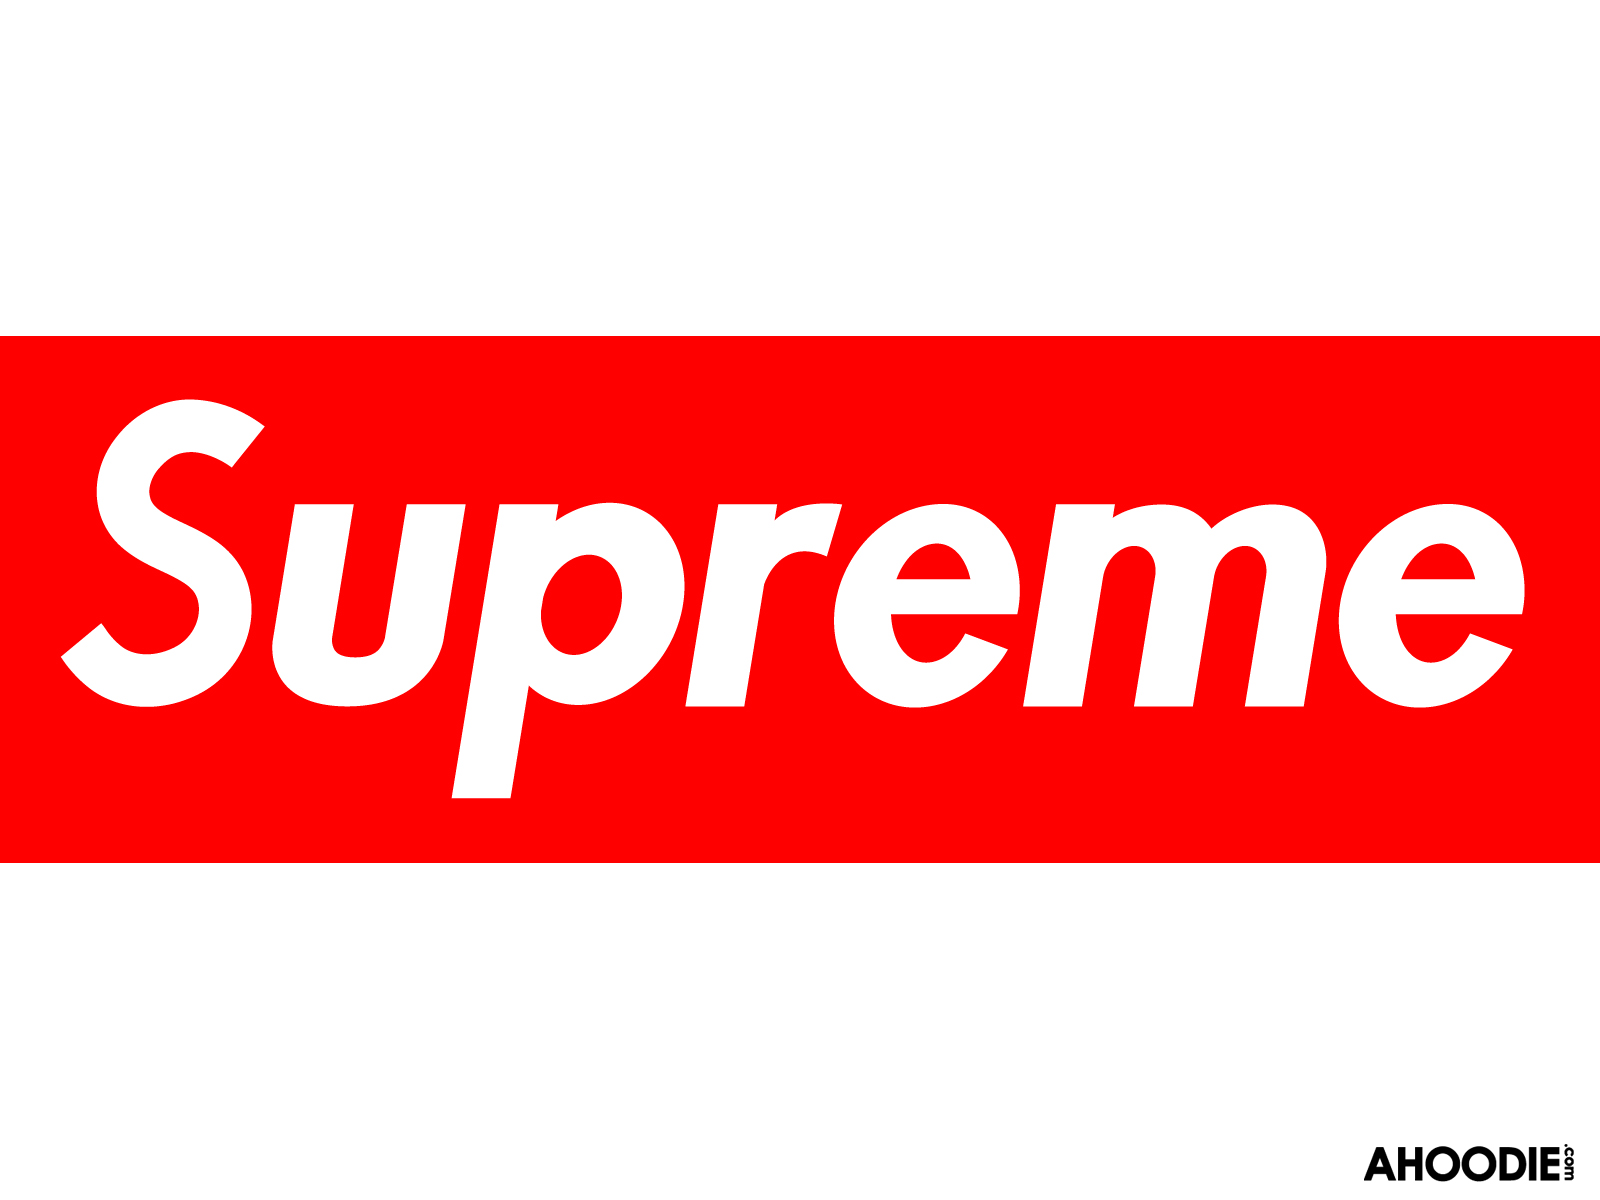 http://3.bp.blogspot.com/-me9I9eE6xQo/Tby_8xsmmkI/AAAAAAAAAGE/8TBZKtmmBQE/s1600/supreme_wallpaper_supreme_wallpapers_1.jpeg